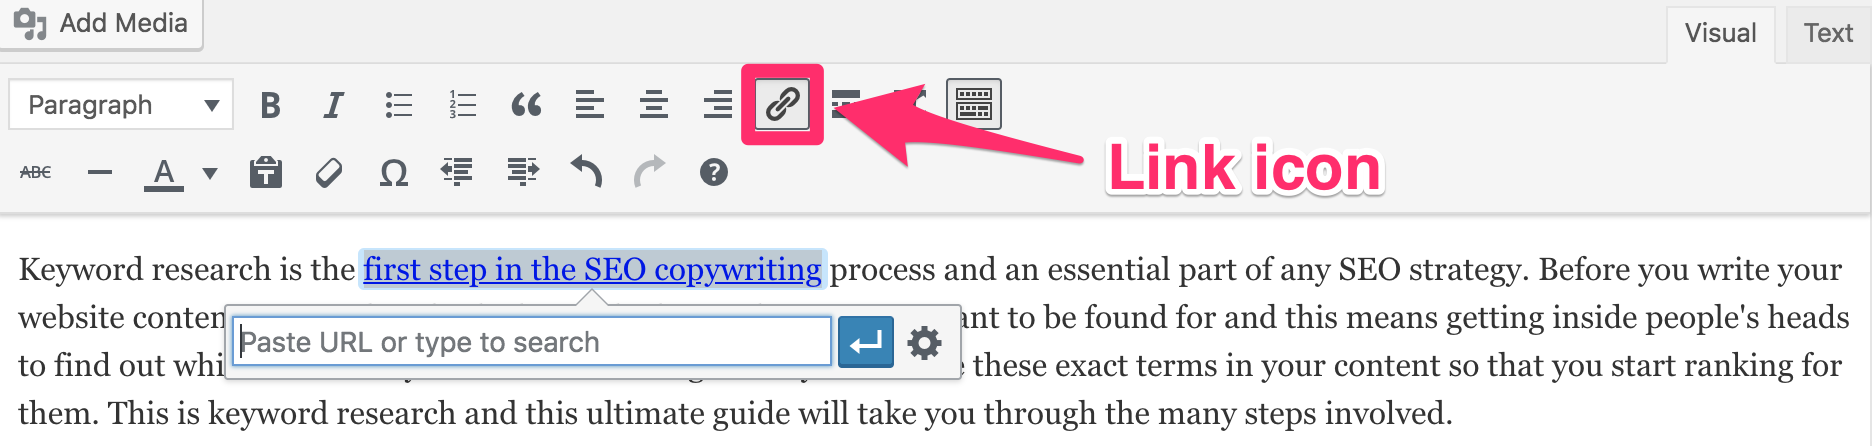 Link icon position in WordPress